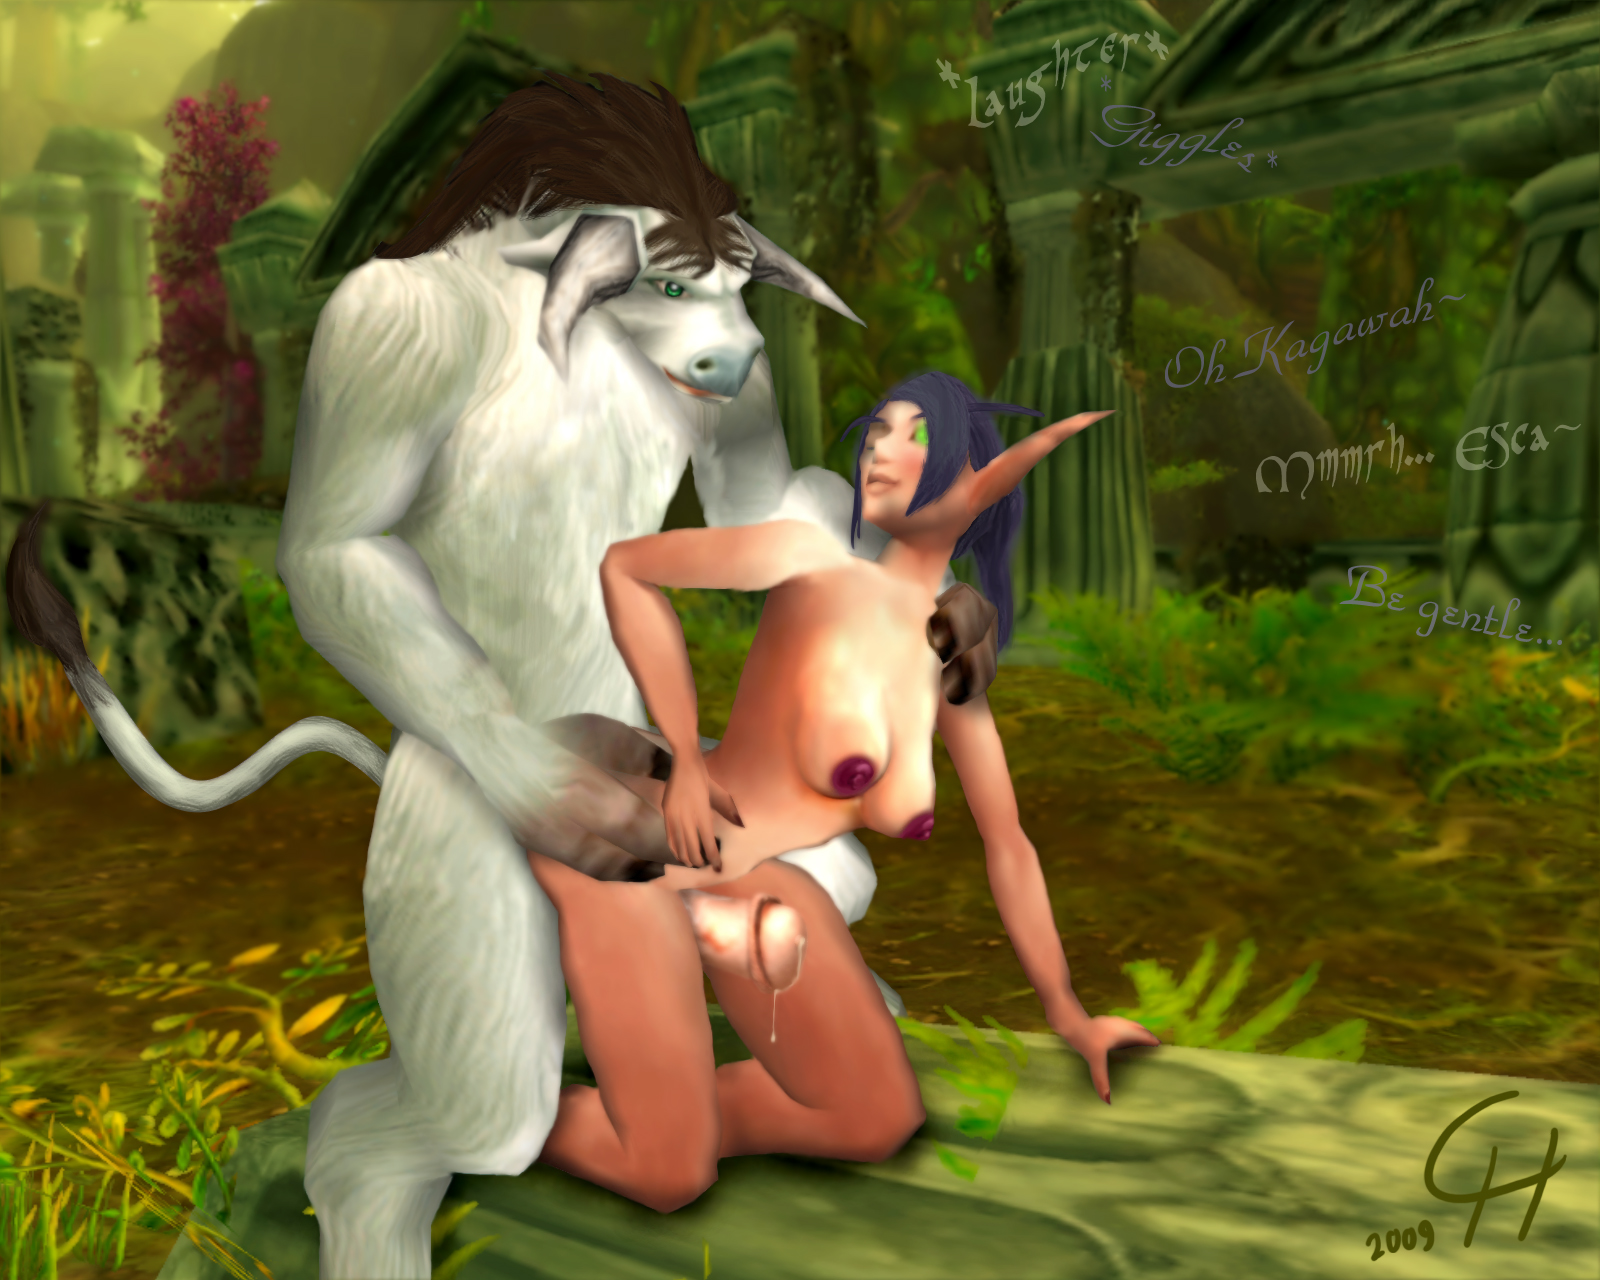 World of porncraft naked blood elf hardcore scenes